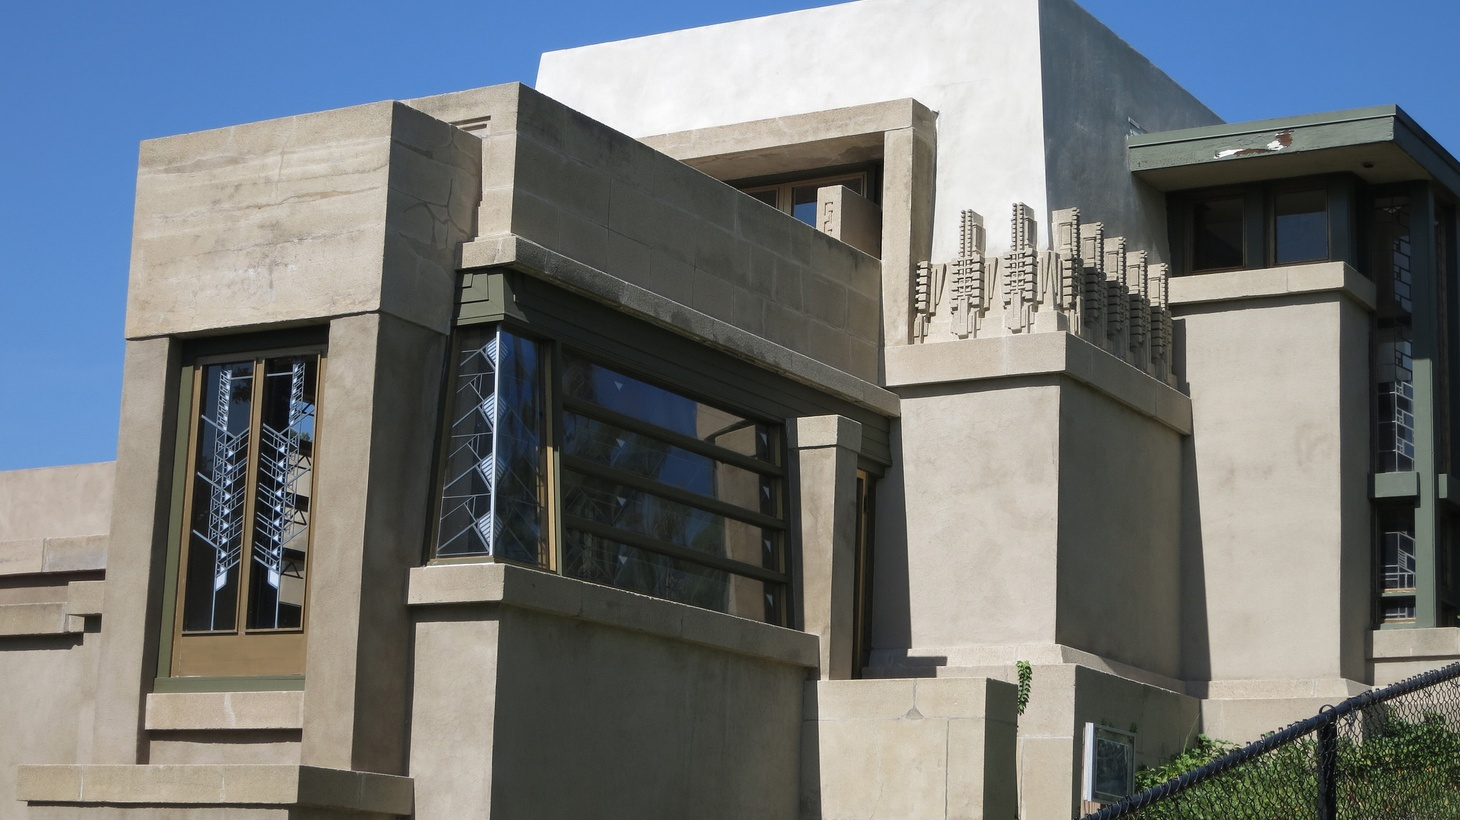 Frank lloyd wright 39 s los angeles gems design and - Frank lloyd wright architecture style ...